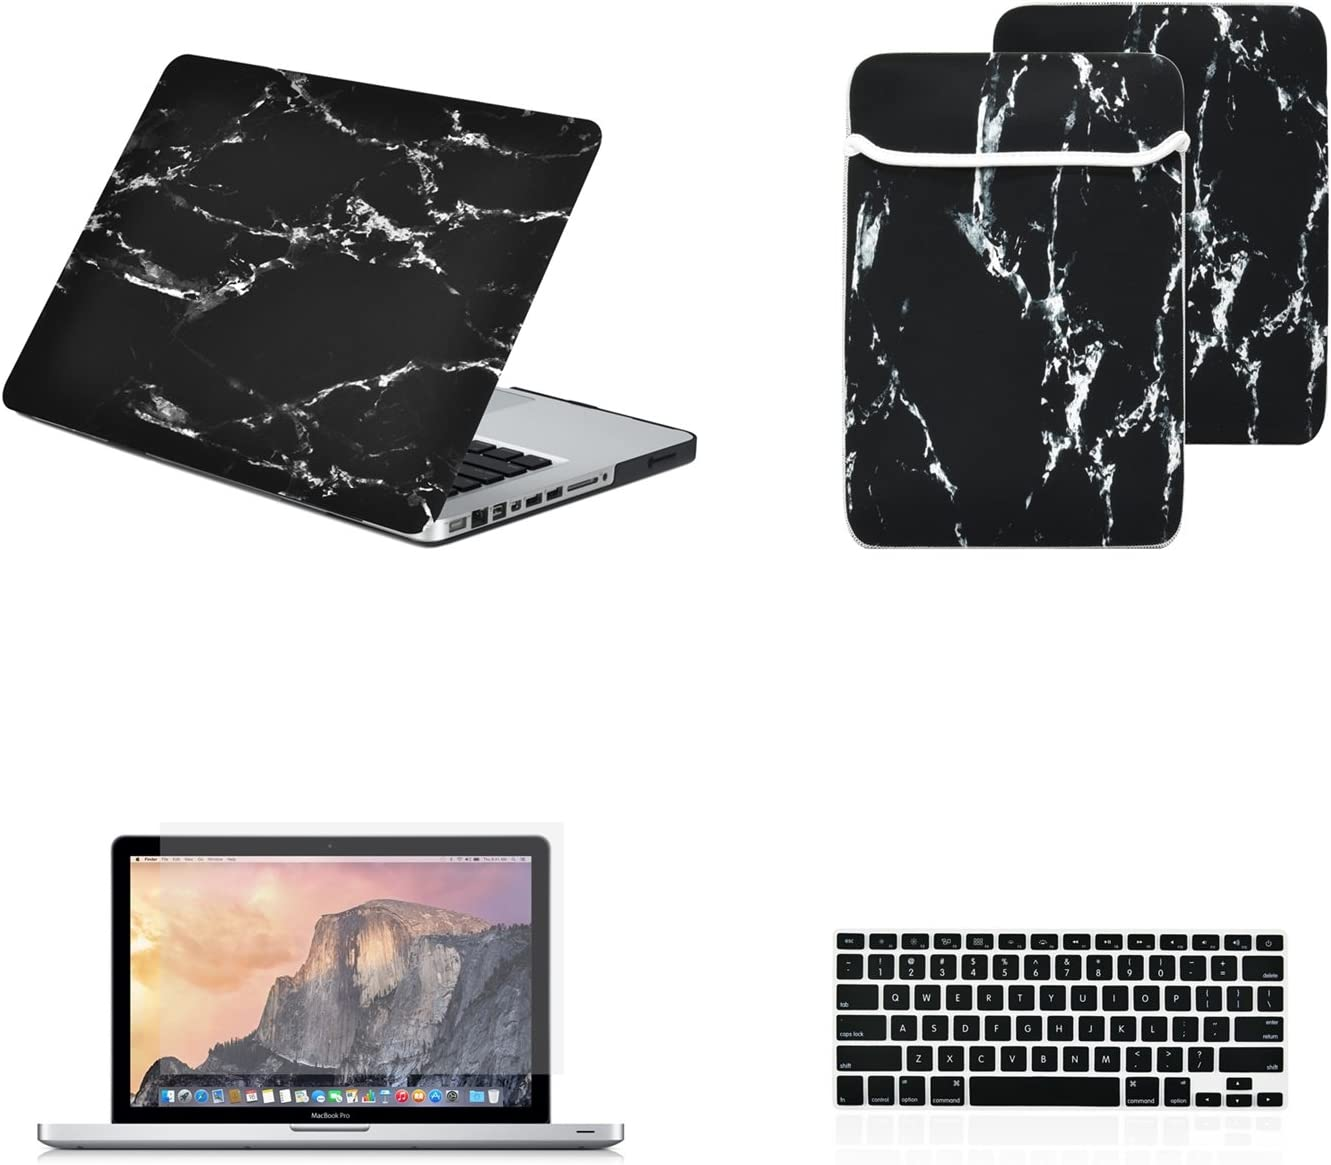 """TOP CASE - 4 in 1 Essential Bundle Marble Pattern Rubberized Hard Case, Sleeve, Keyboard Cover, Screen Protector Compatible Old Gen. MacBook Pro 13"""" with DVD Drive/CD-ROM A1278 - Marble Black"""